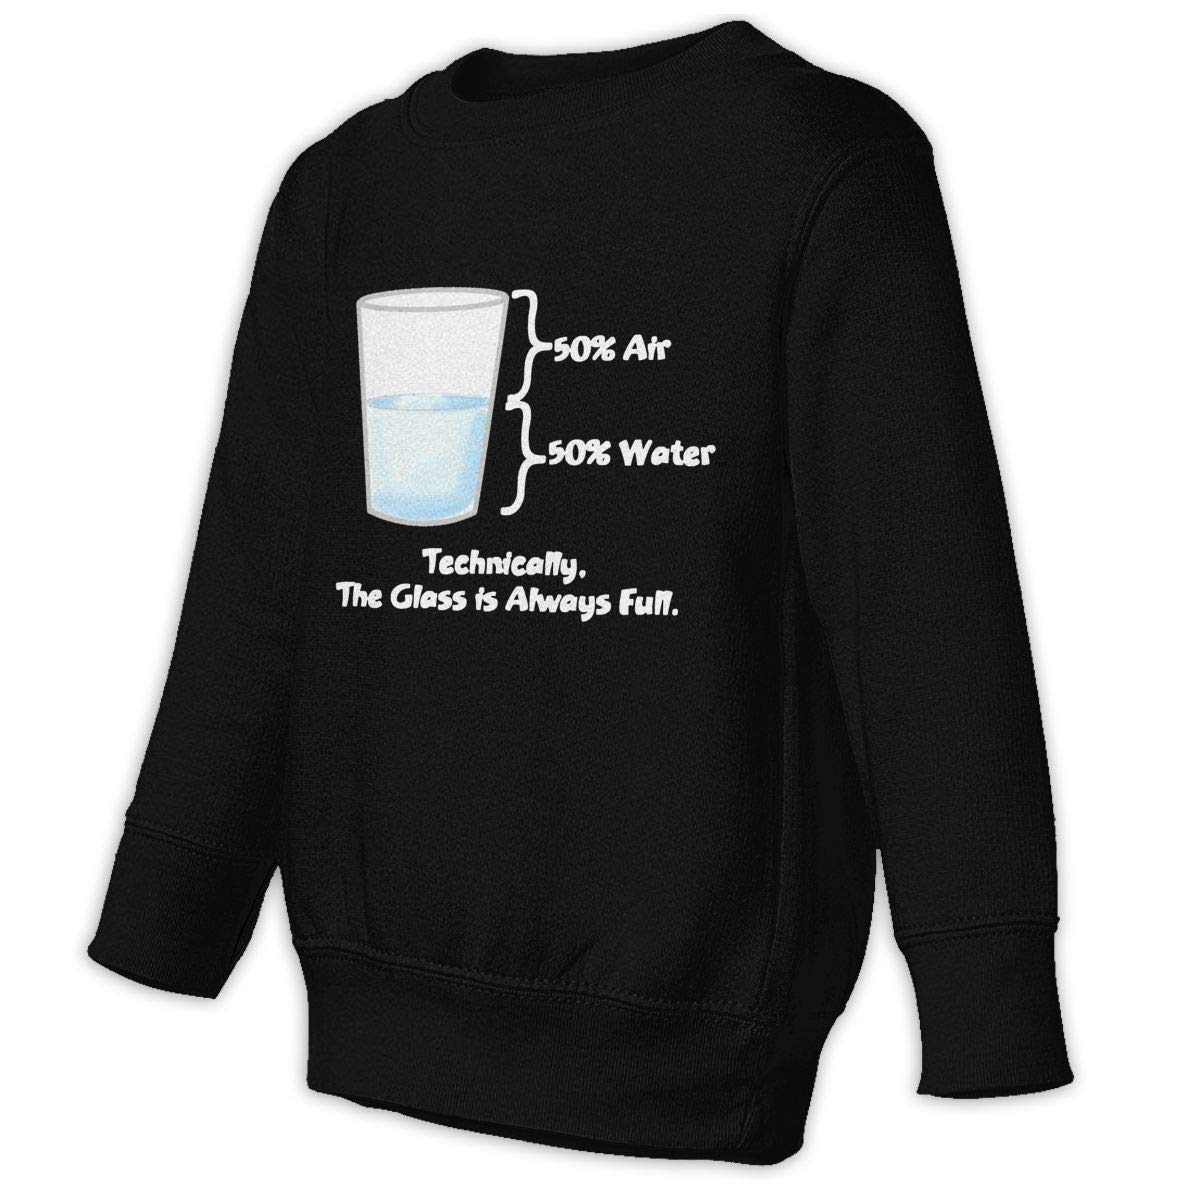 GHYNJUM Technically The Glass is Completely Kids Unisex Cotton Long Sleeve Round Neck Pullover